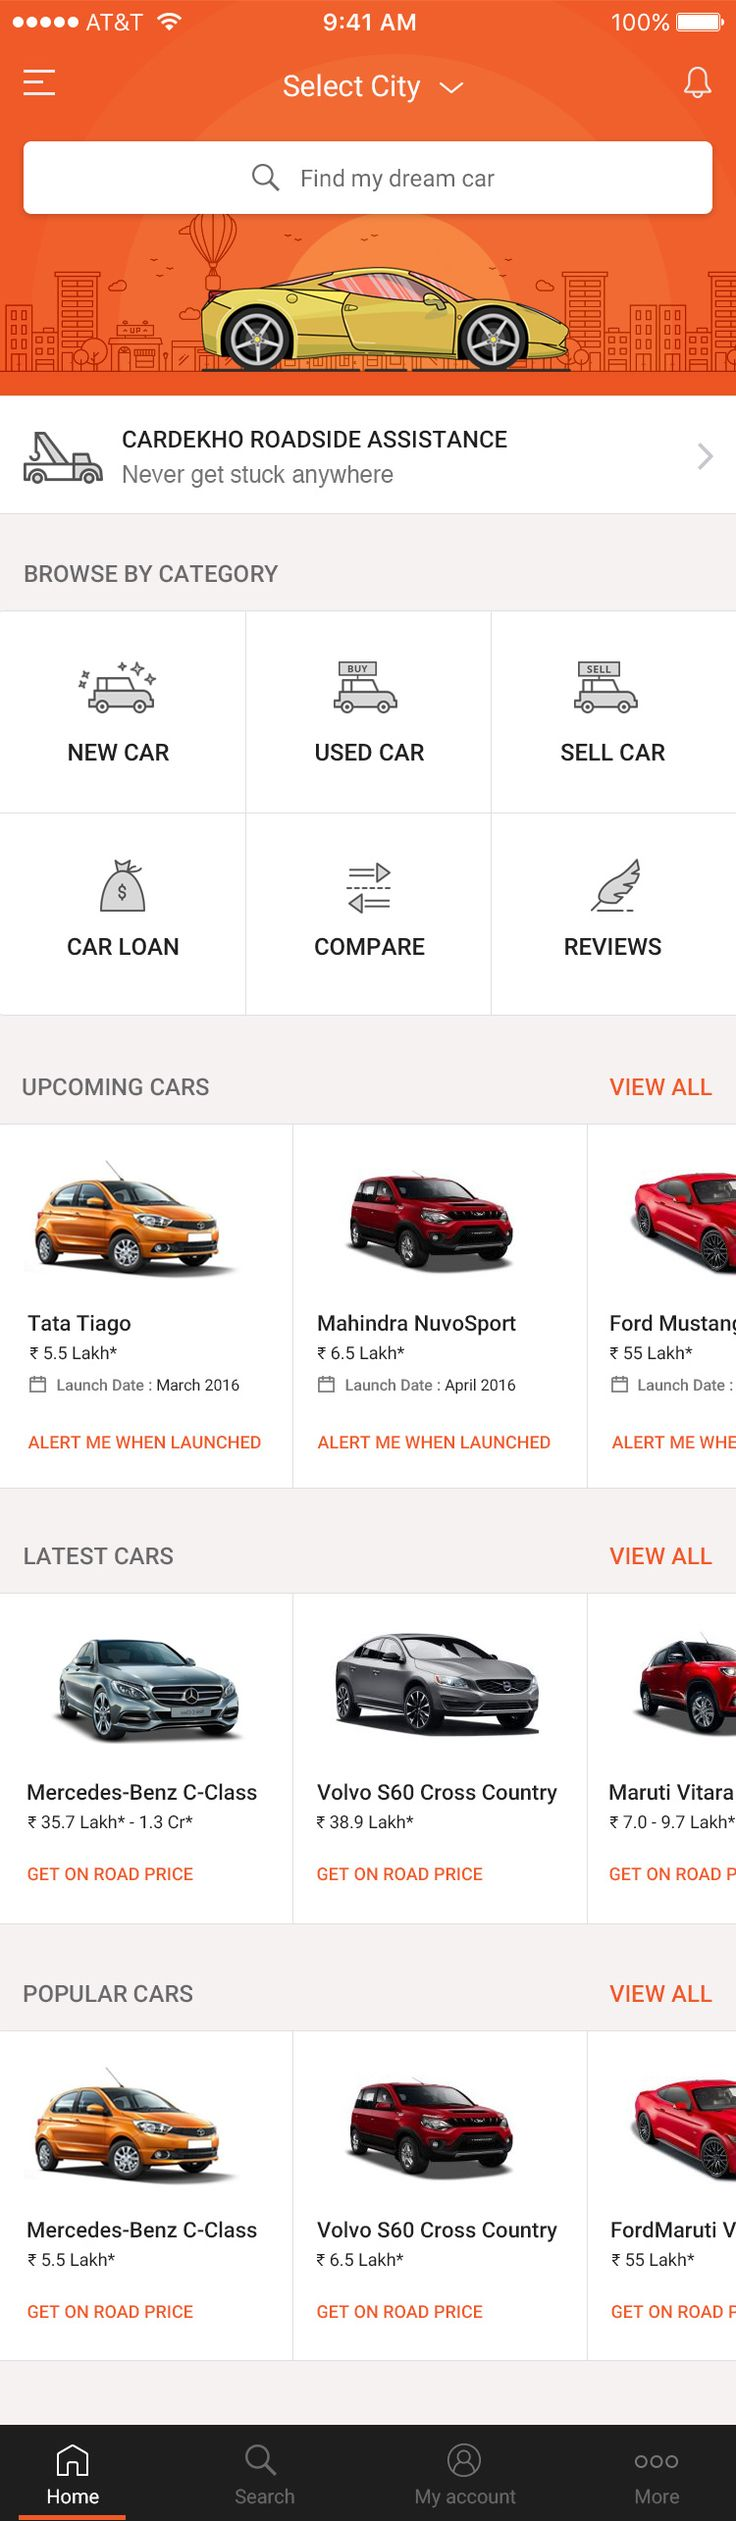 Car shopping mobile app UI design - 완전한